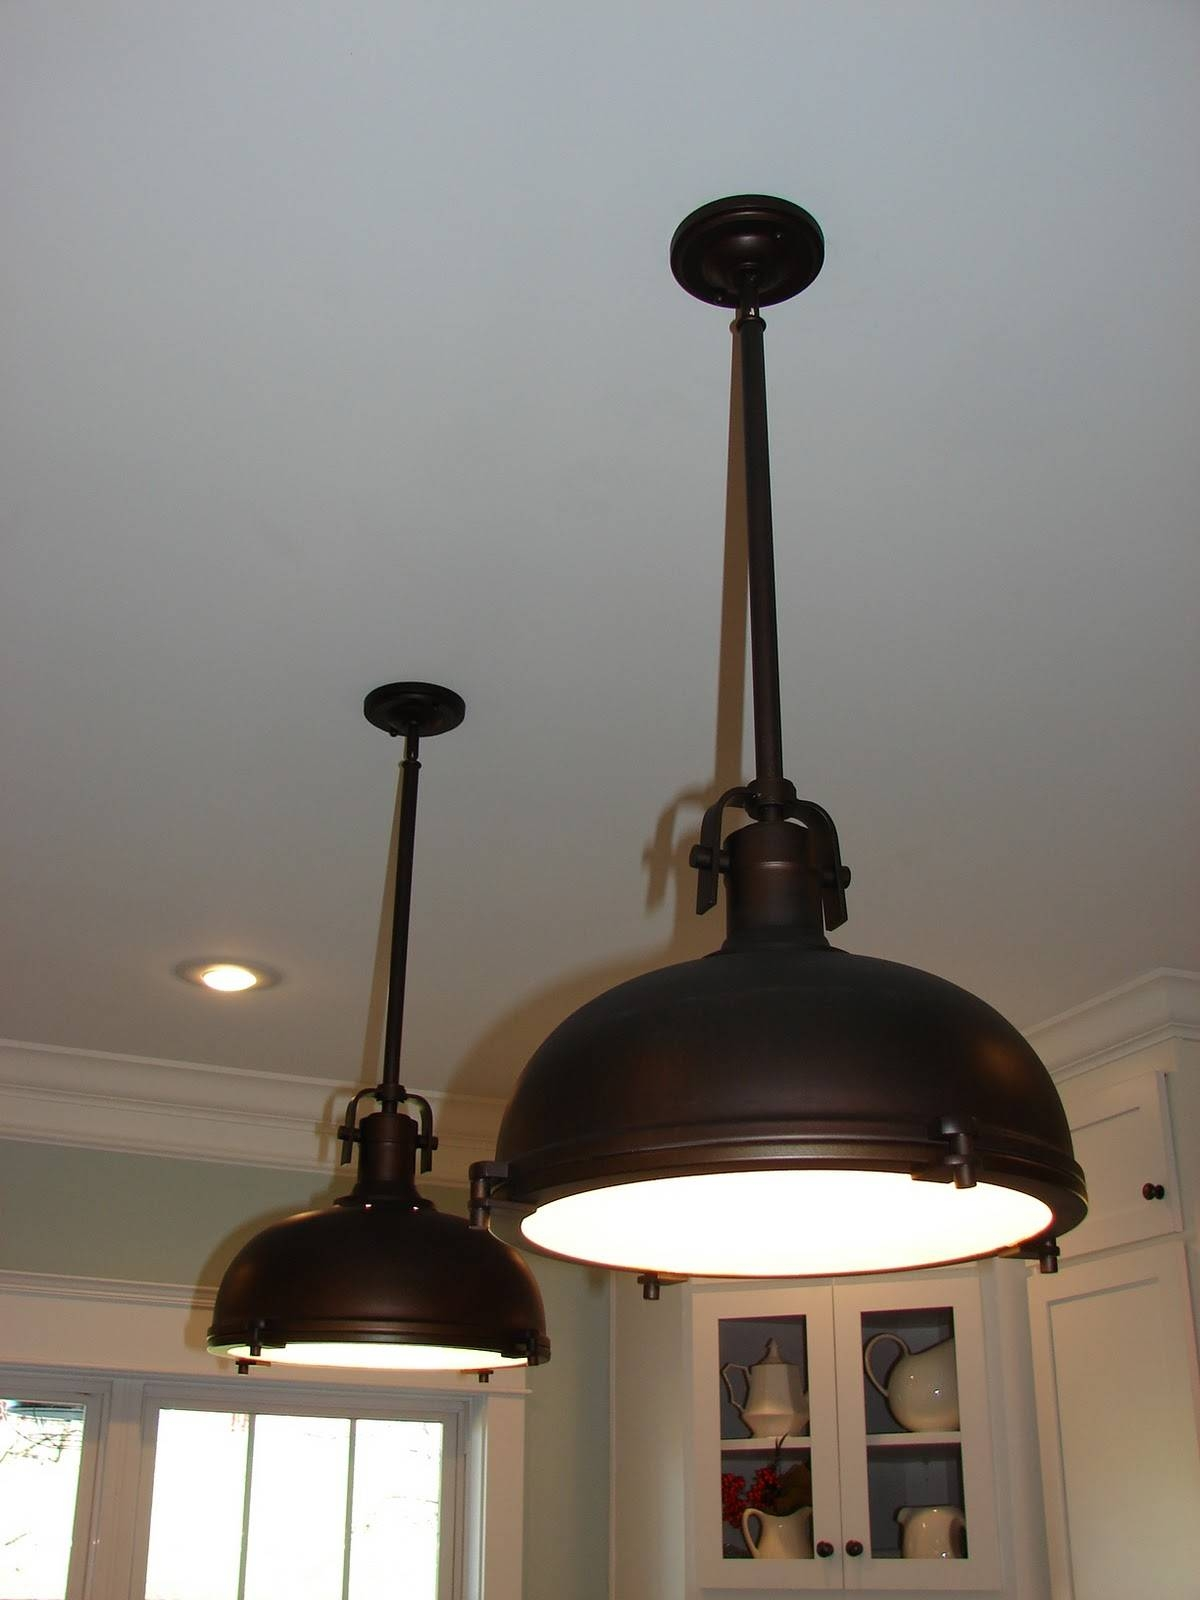 Industrial Pendant Lighting Canada Pictures – Home Furniture Ideas intended for Canada Pendant Light Fixtures (Image 7 of 15)